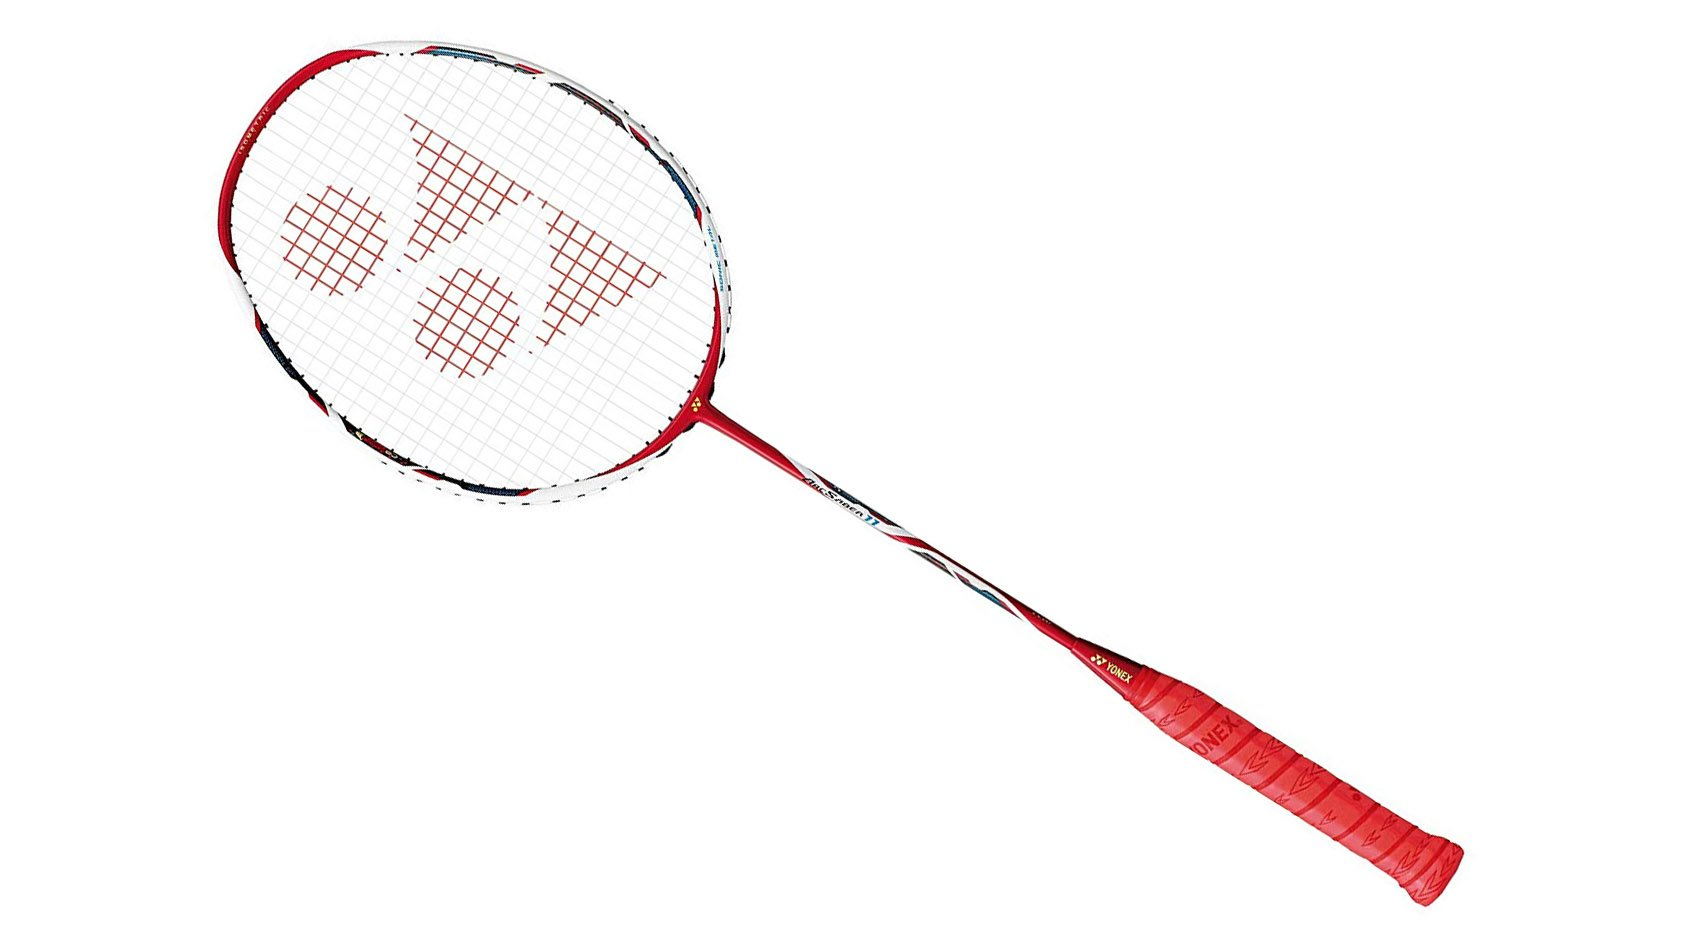 Best badminton racket 2020: Up your game with the perfect ...